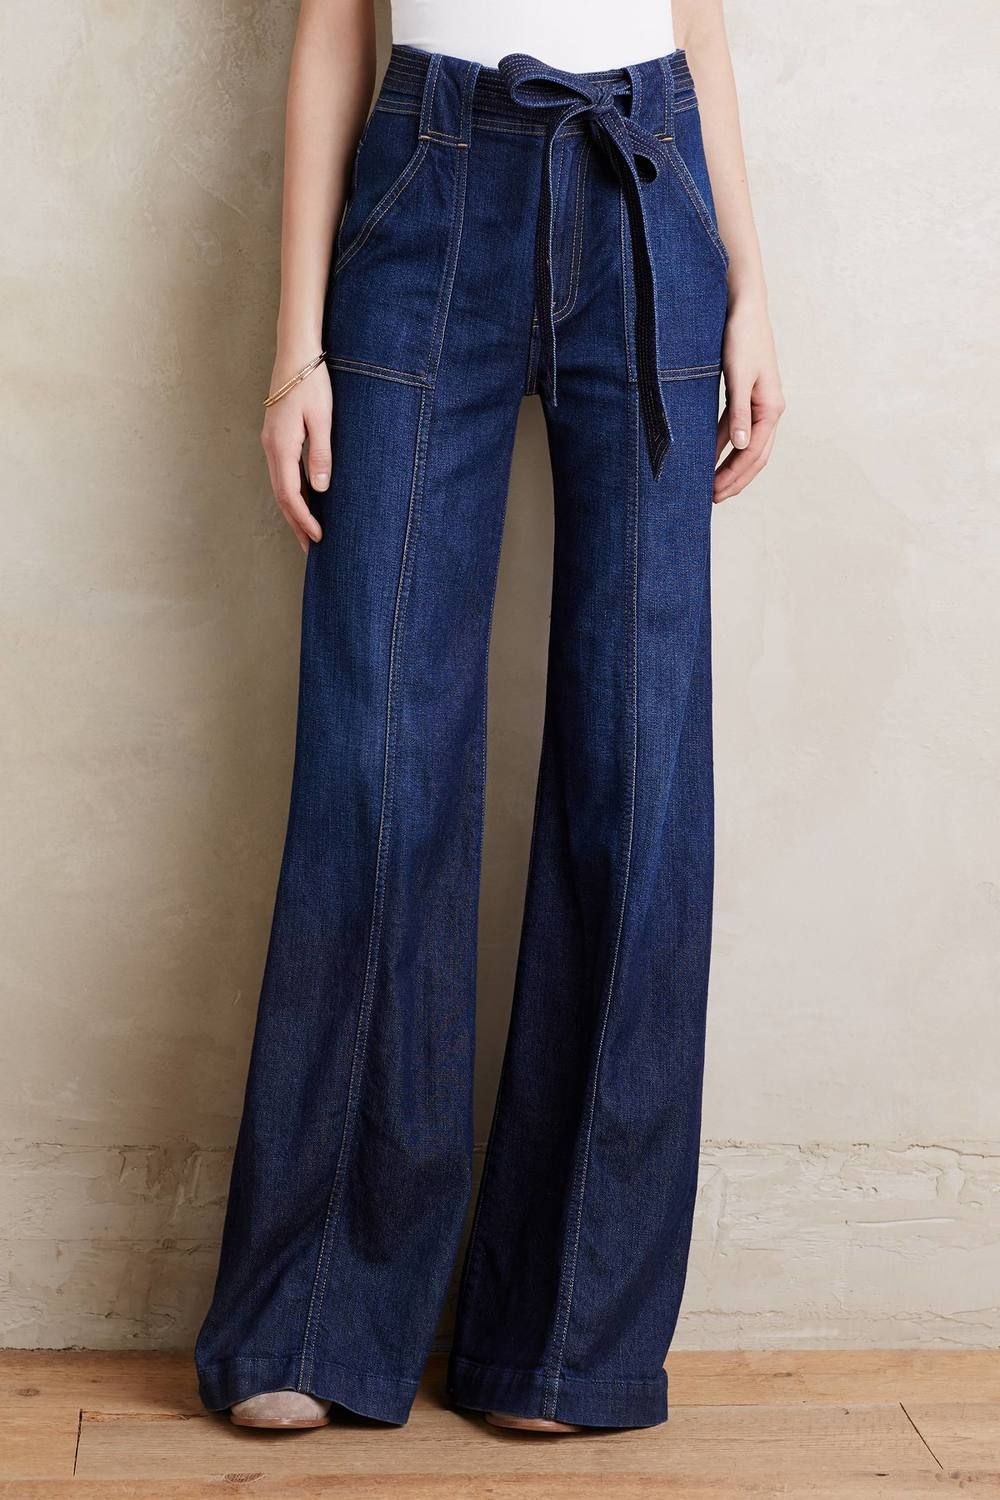 cfcc66a7 7 For All Mankind Palazzo Jeans Dark Denim 24 Pants- Just in must-see picks  at Anthropologie.